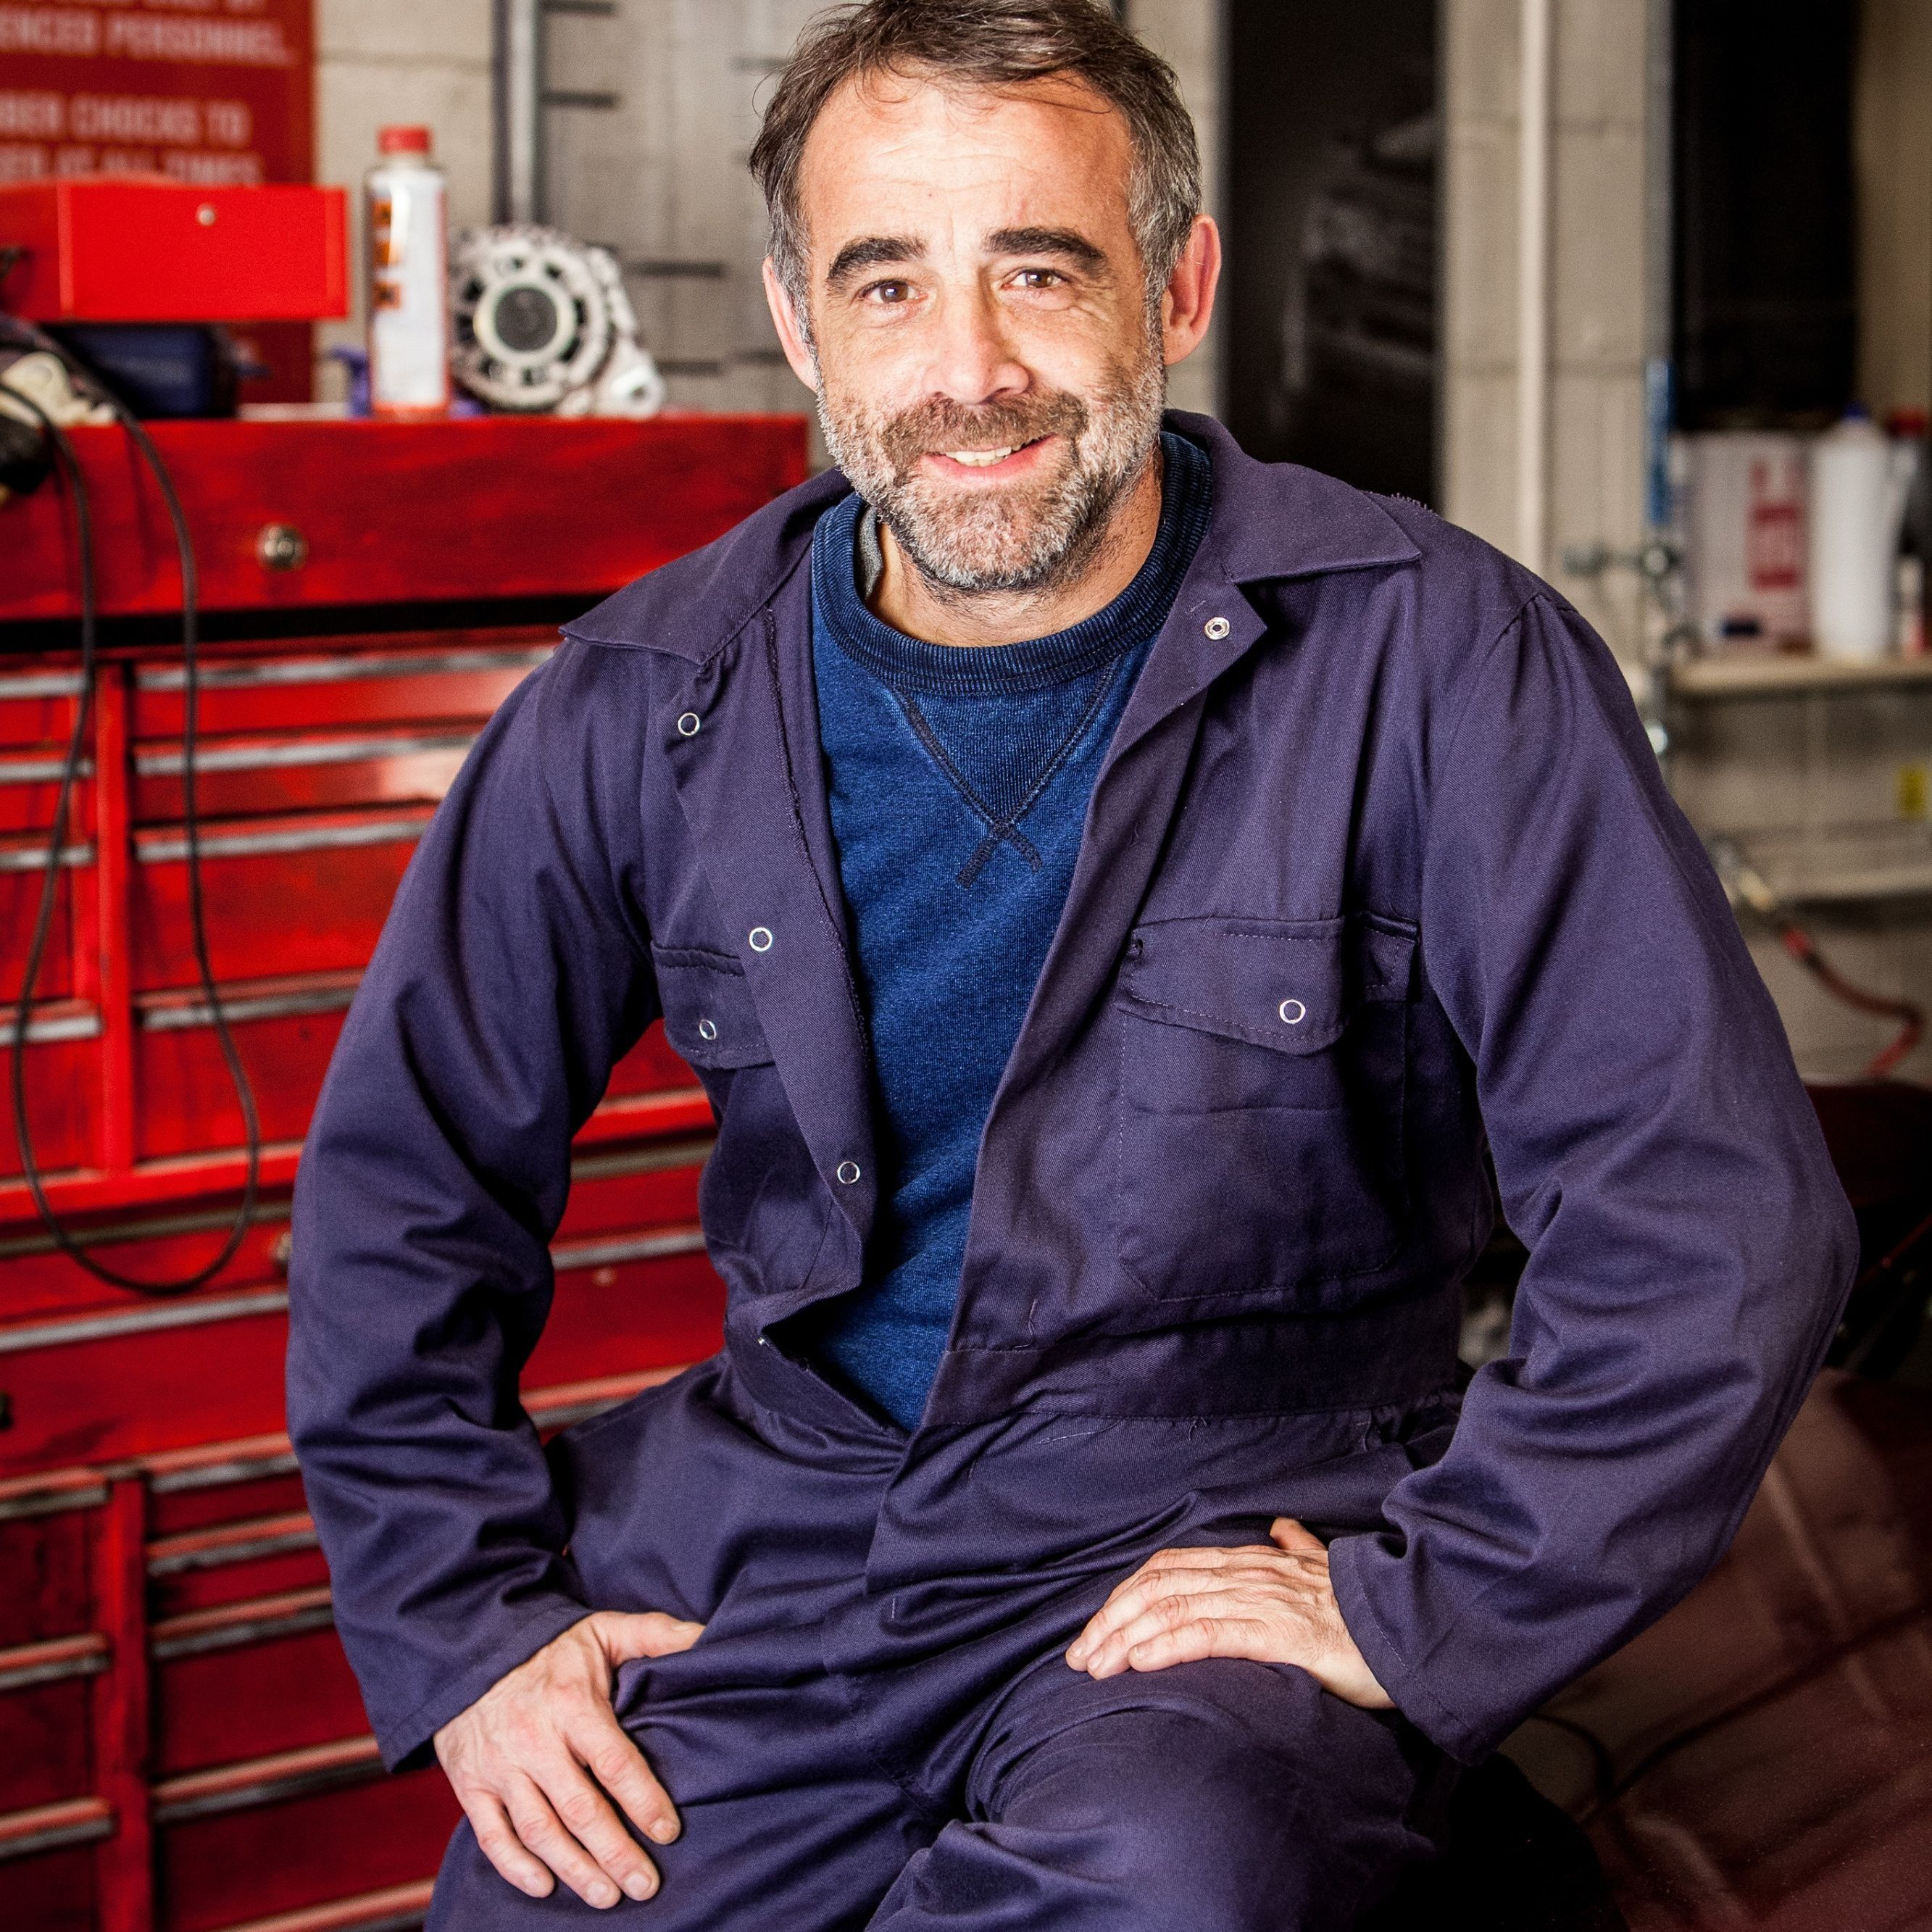 Coronation Street's Michael Le Vell set to celebrate 40 years on the soap with new contract